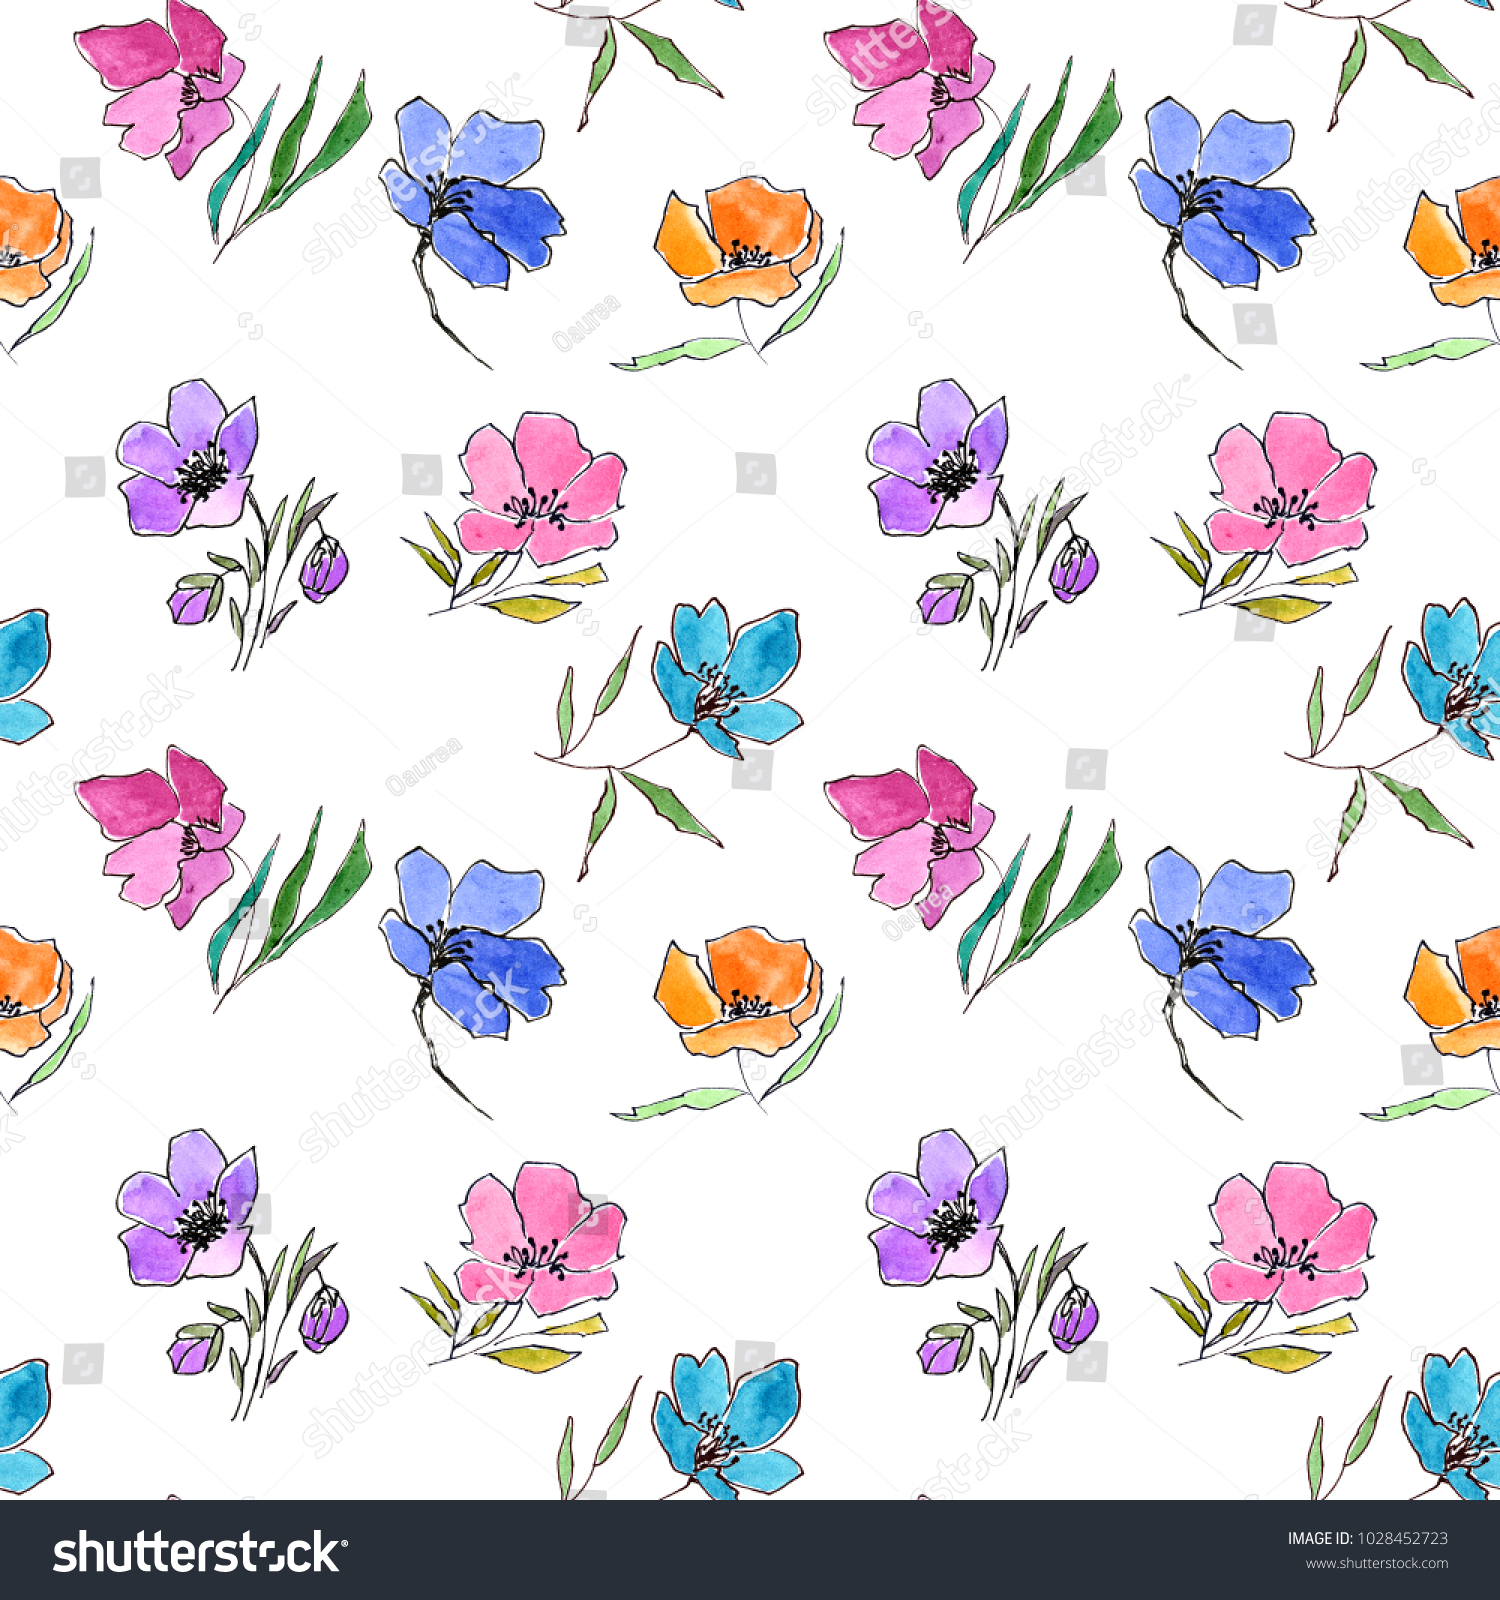 Seamless Floral Pattern Watercolor Flowers Floral Stock